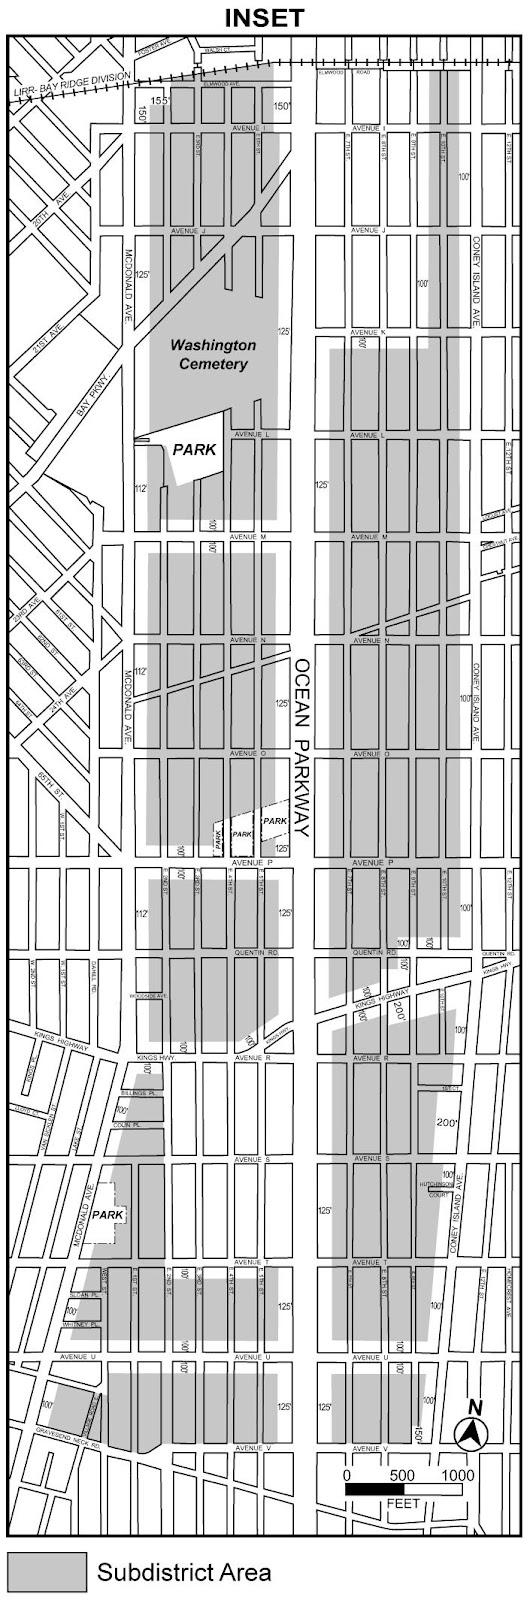 Zoning Resolutions Chapter 3: Special Ocean Parkway District Appendix A.2